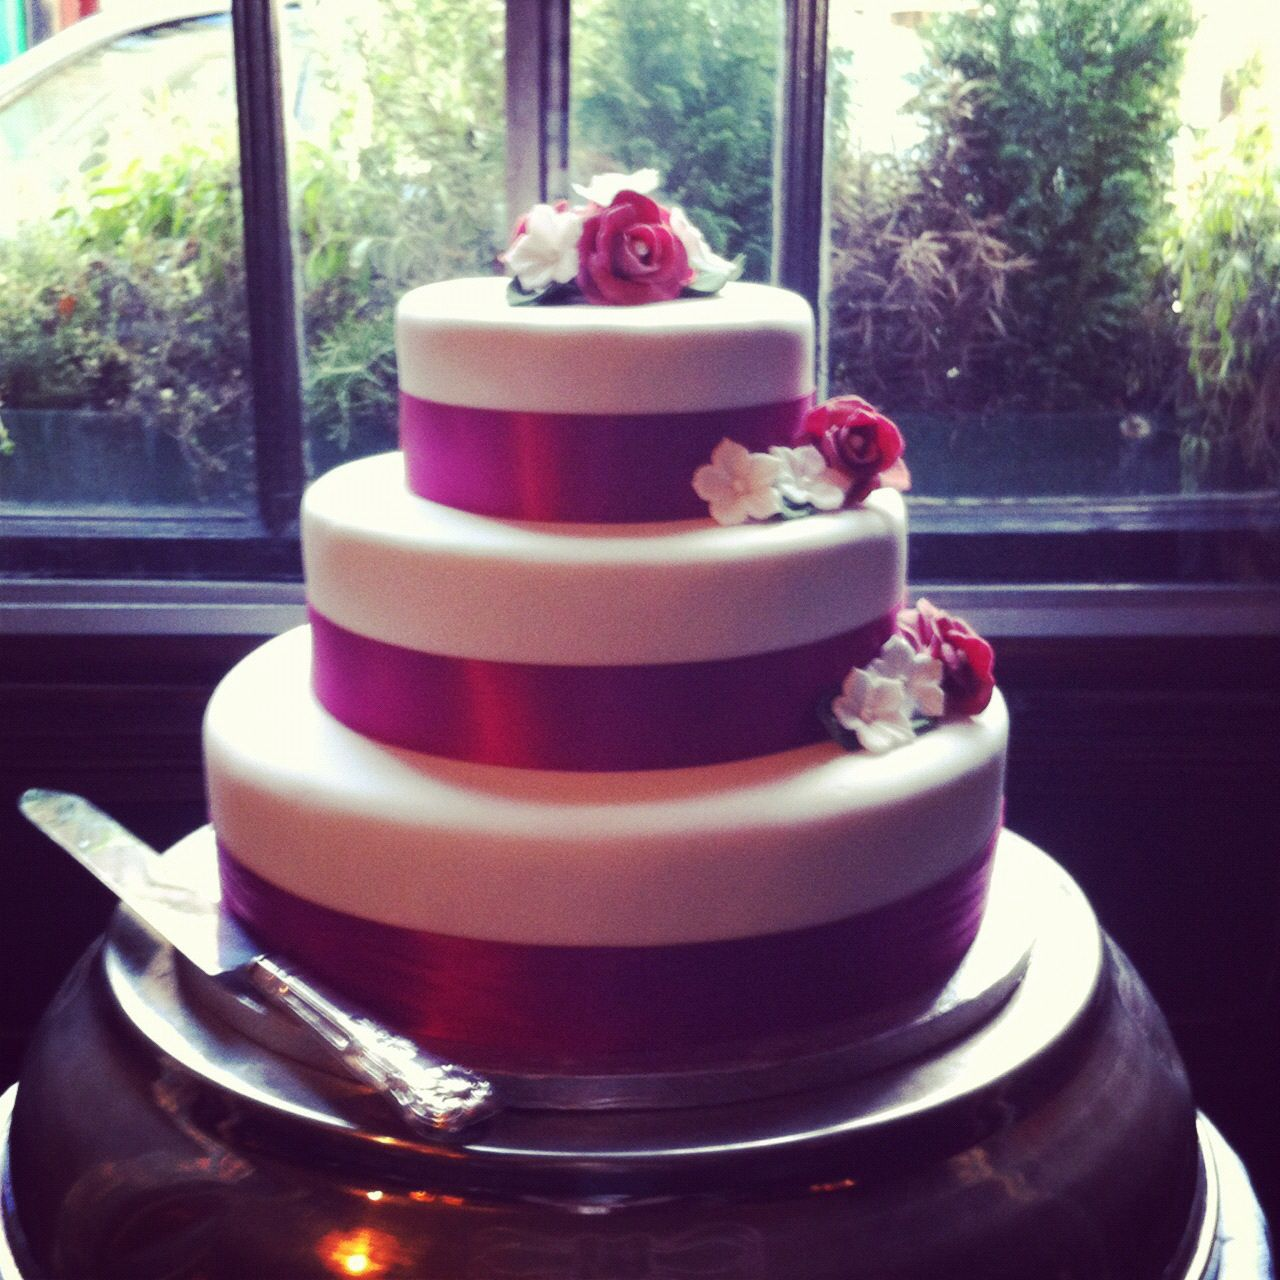 3 tier wedding cake. Simple but beautiful